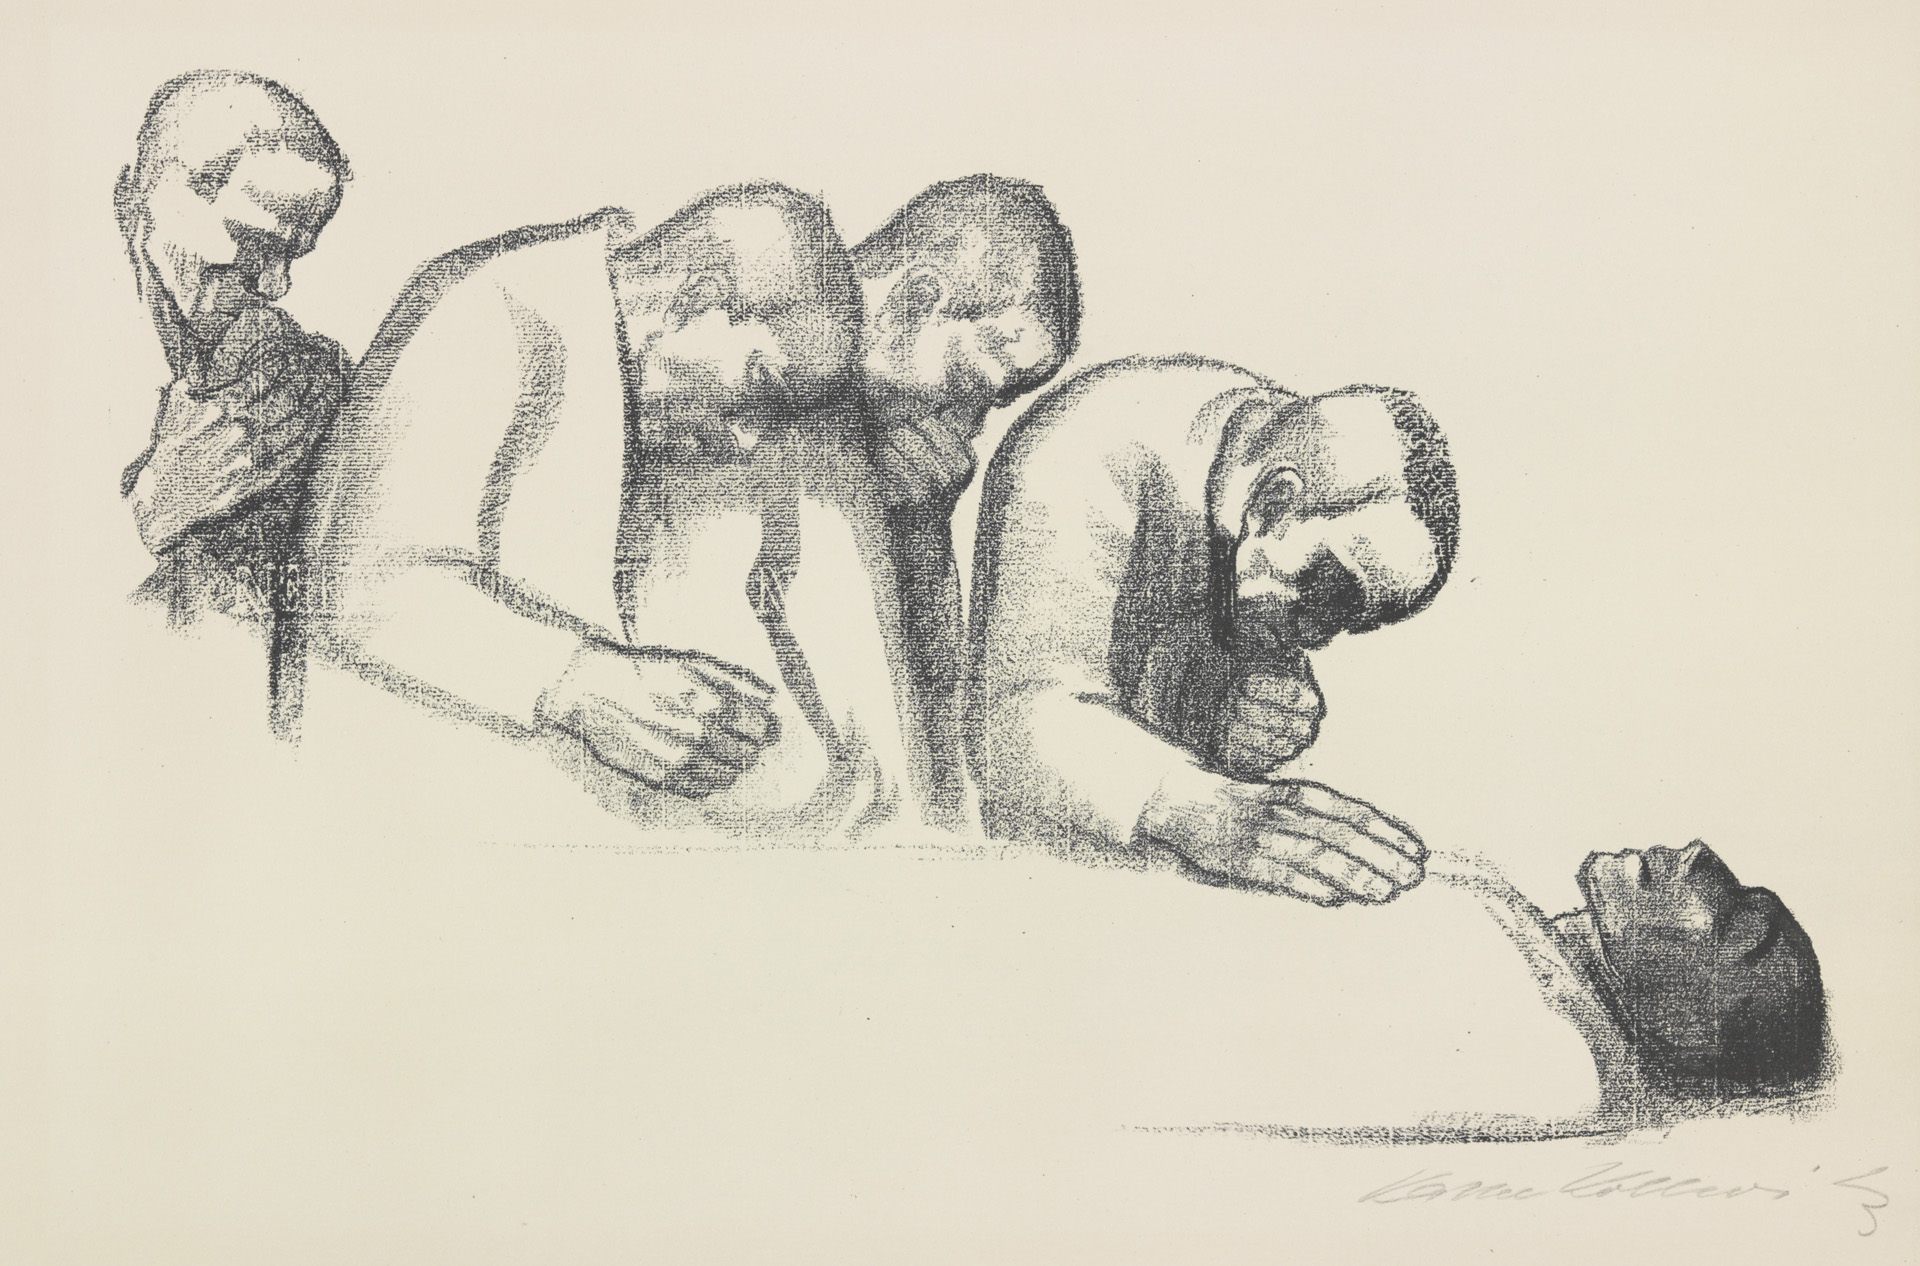 Käthe Kollwitz, In Memoriam Karl Liebknecht, rejected second version, 1919, crayon lithograph (transfer of drawing NT 779 on ribbed laid paper), Kn 146, Cologne Kollwitz Collection © Käthe Kollwitz Museum Köln